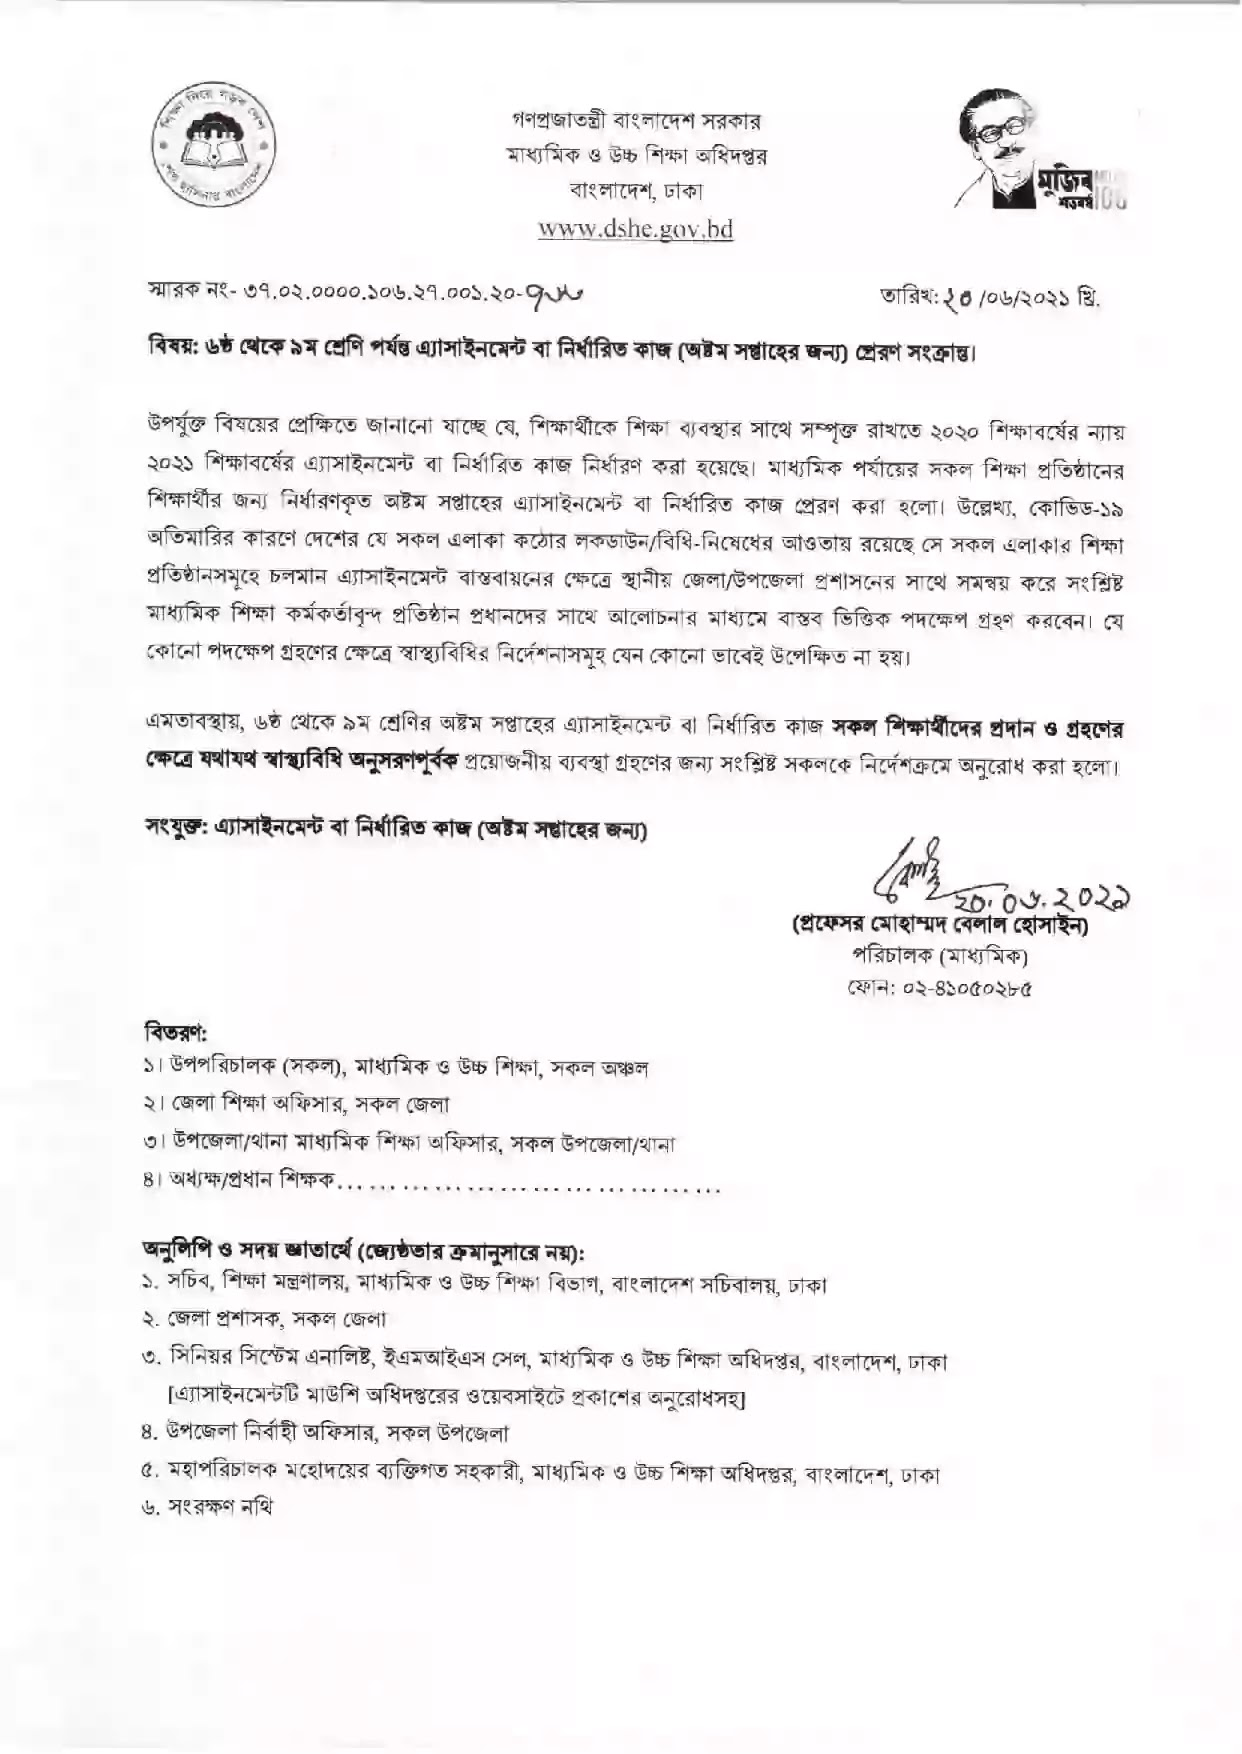 DSHE School Assignment Notice 2021 8th Week